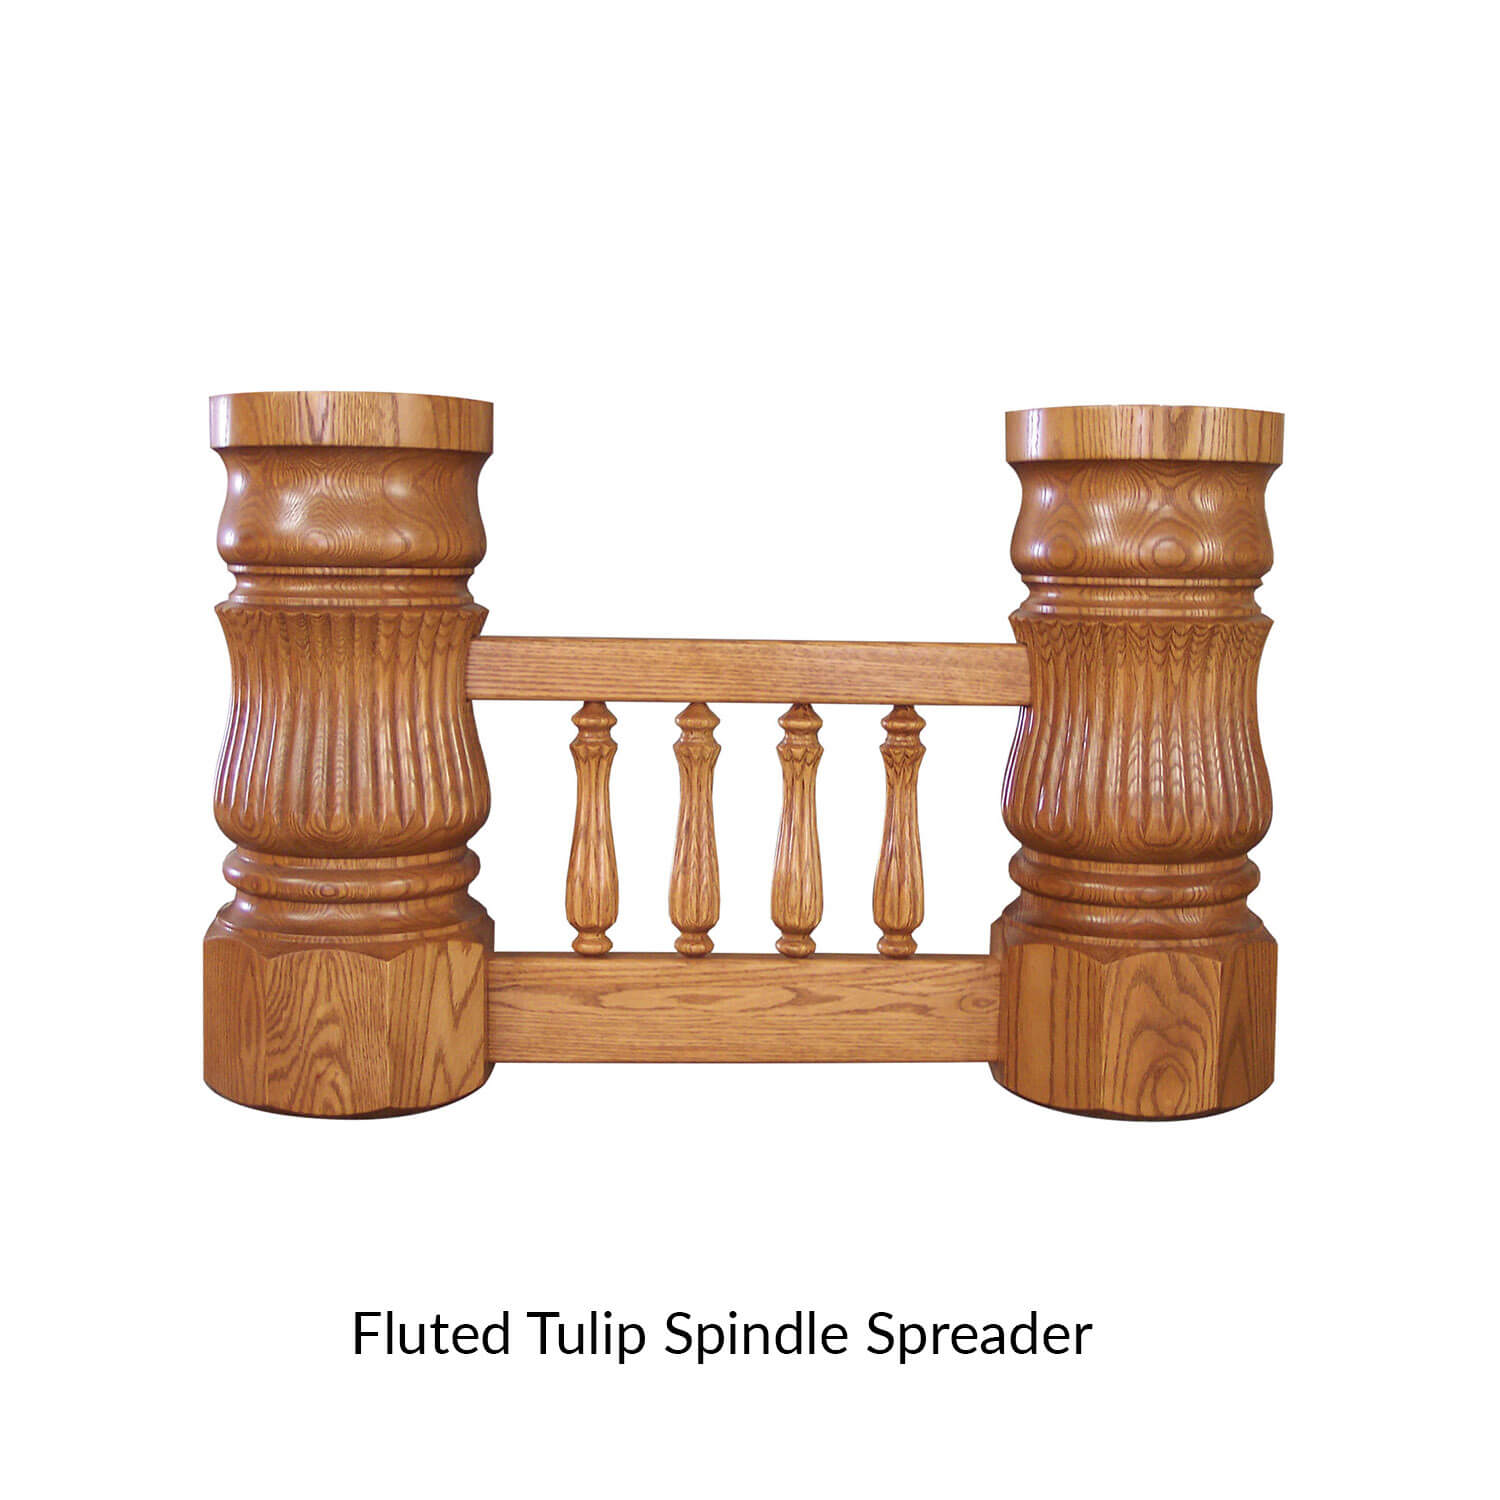 7.4-fluted-tulip-spindle-spreader.jpg